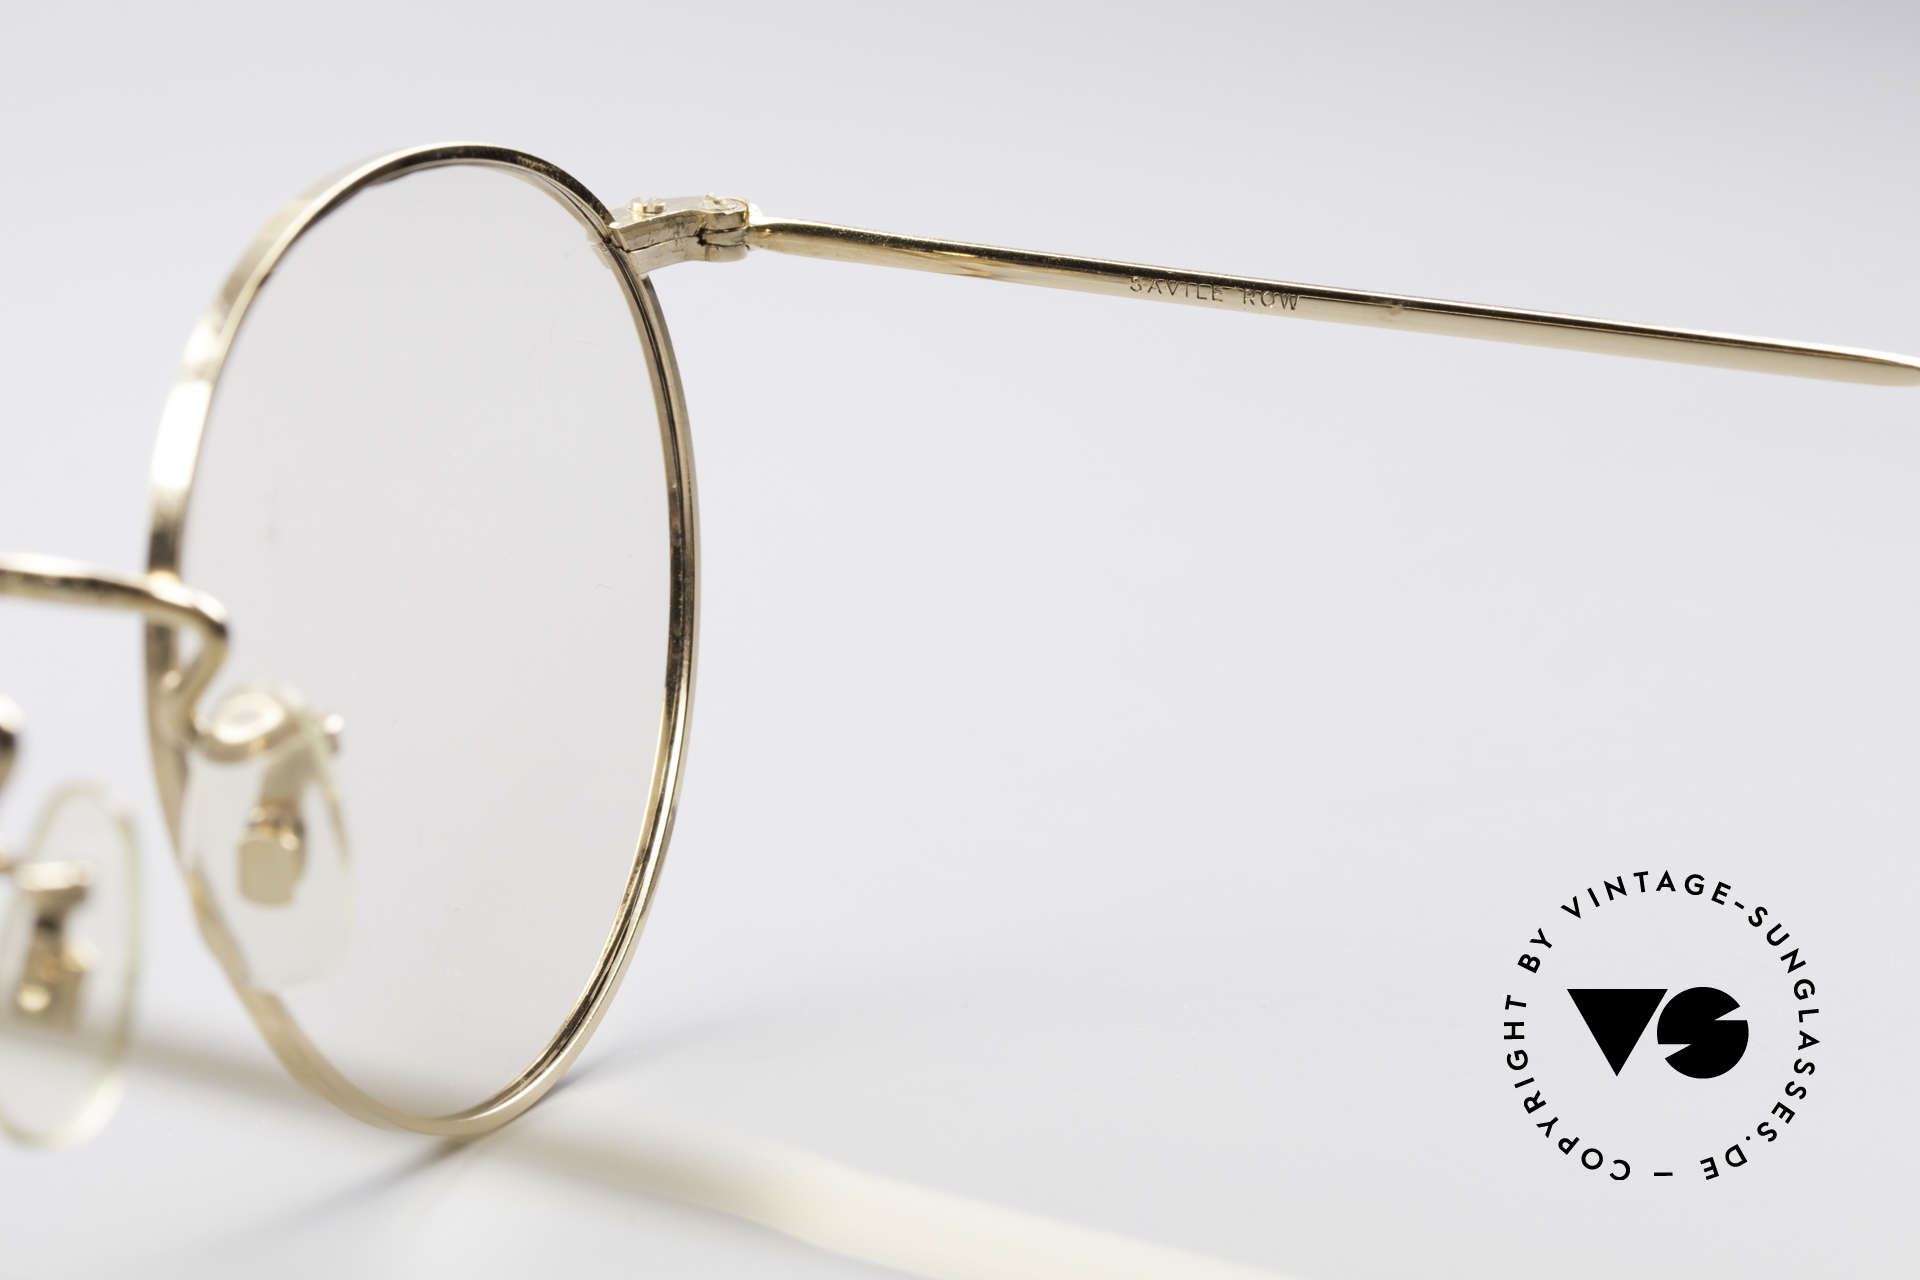 Savile Row Panto 49/20 John Lennon Vintage Glasses, metal frame can be glazed with lenses of any kind, Made for Men